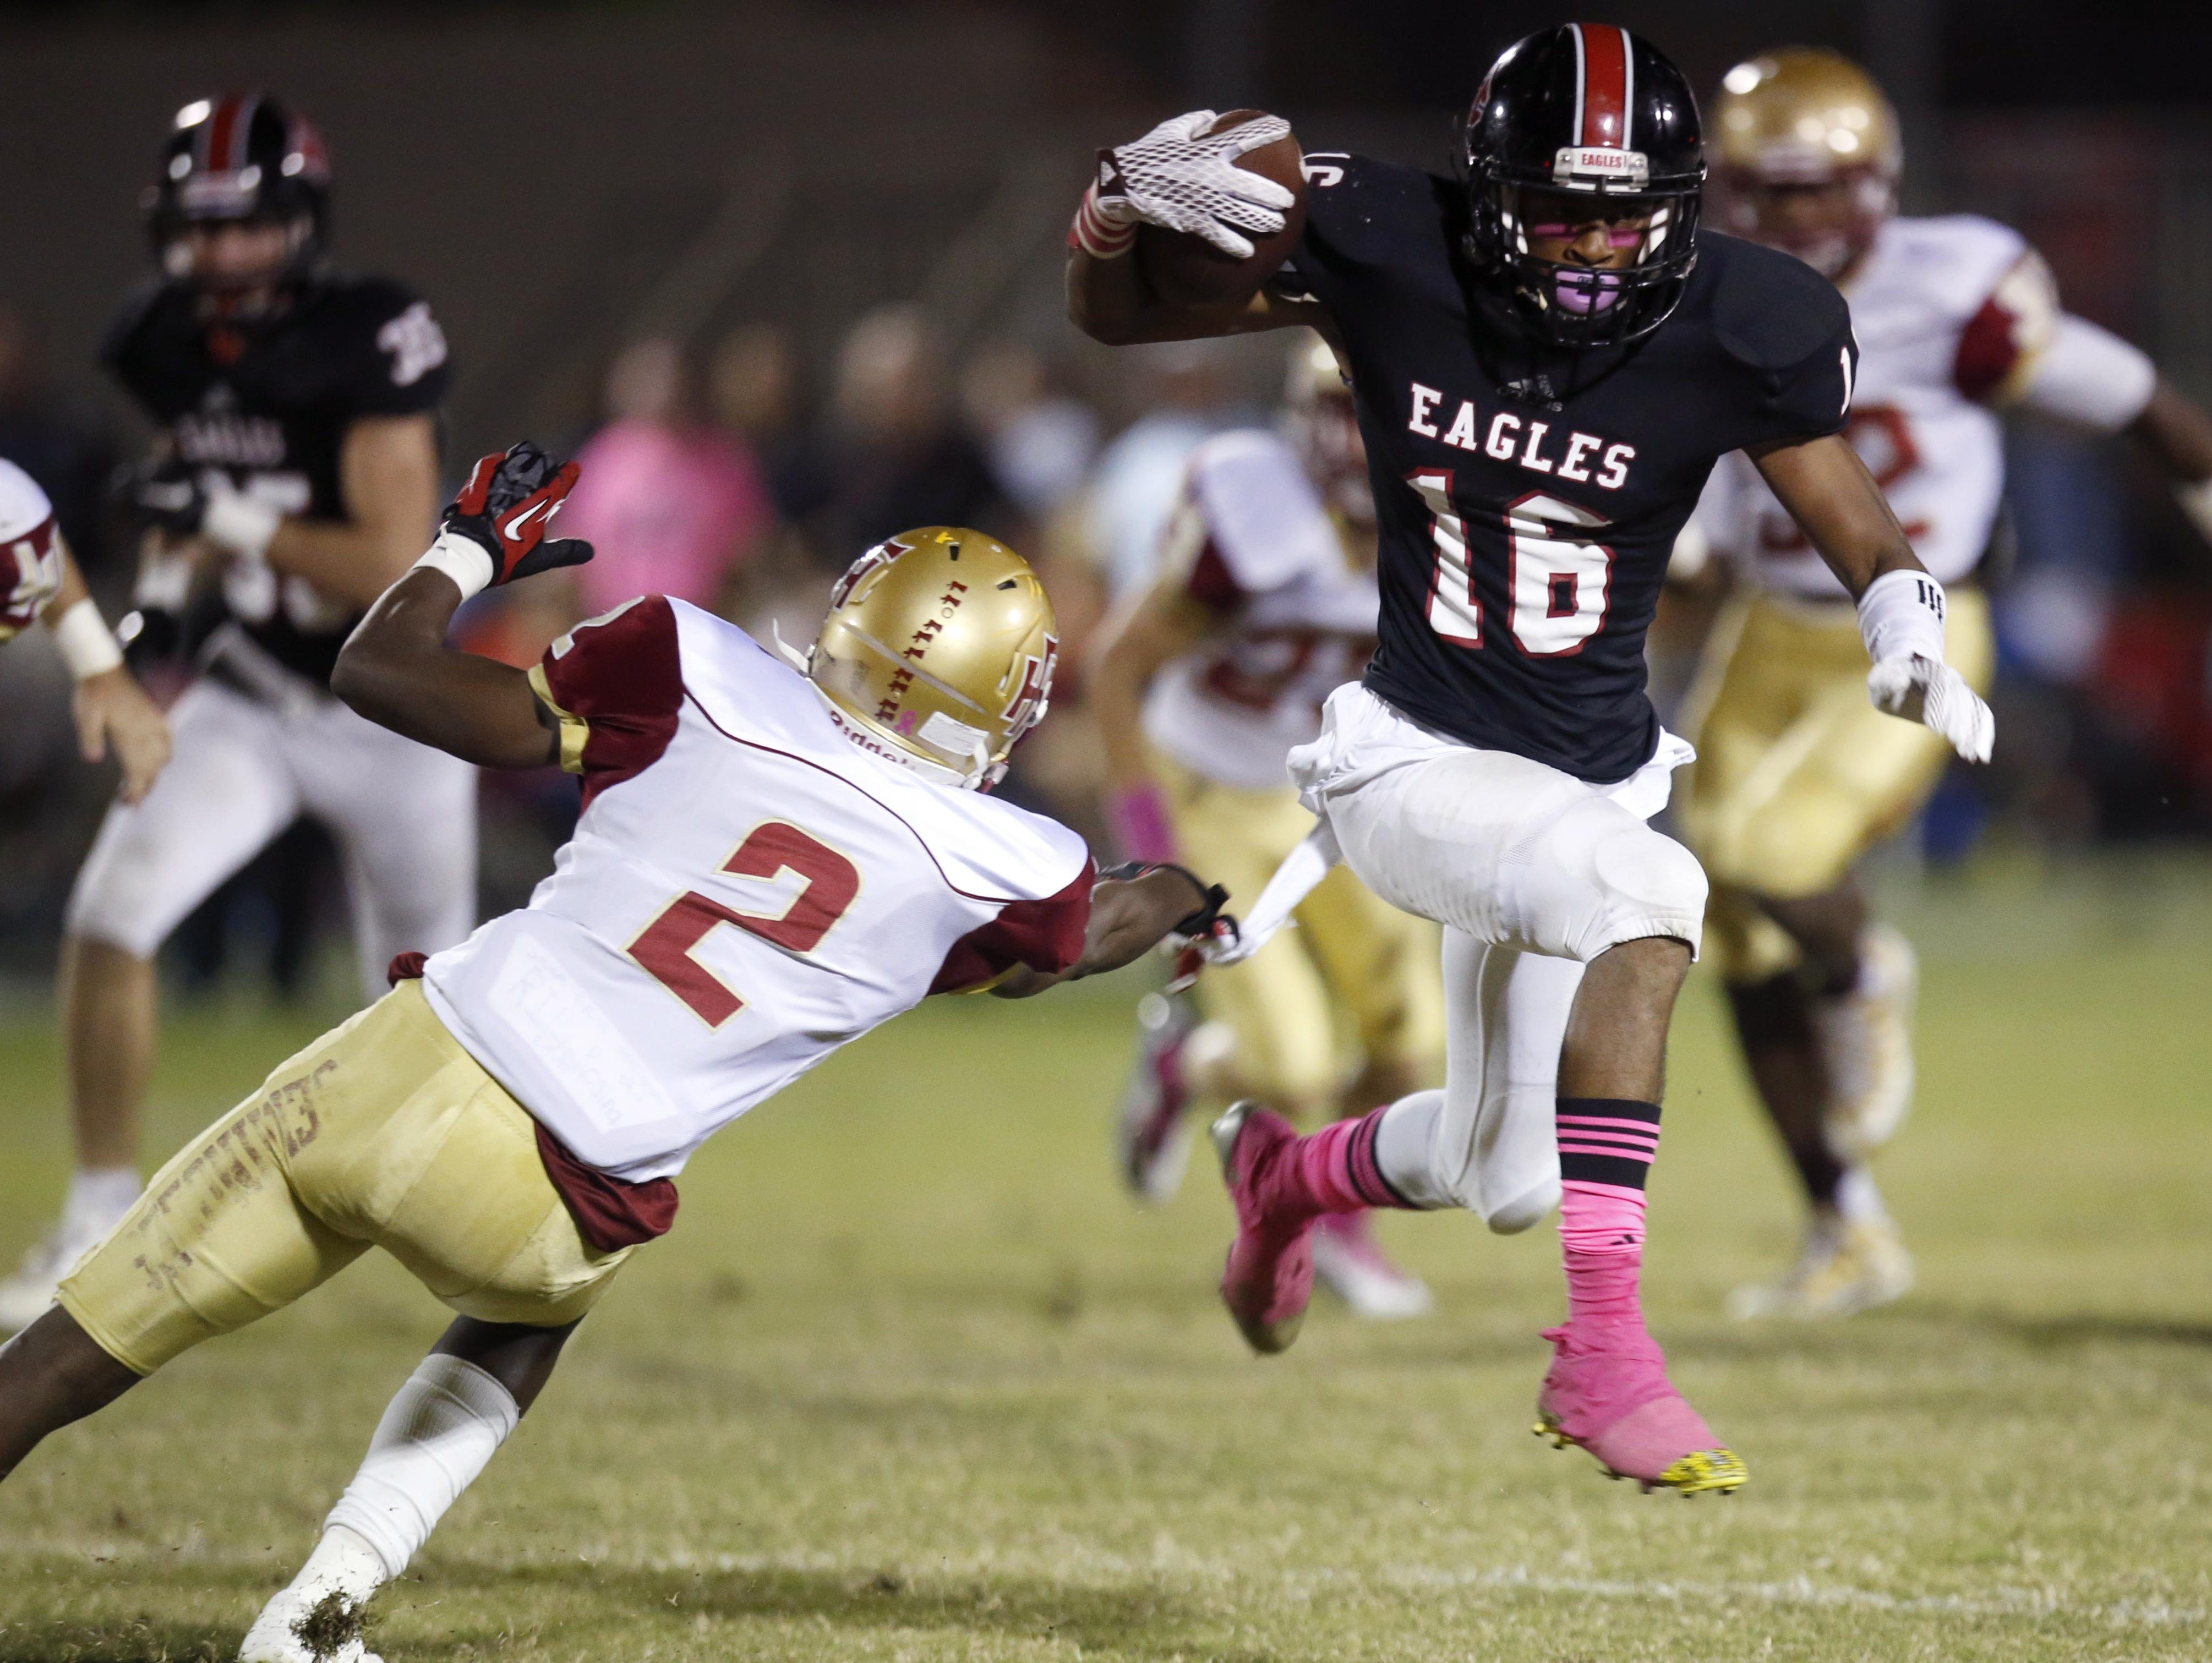 NFC's Korey Charles jukes Florida High's Quinterrius Hill at NFC on Friday. Charles rushed 17 times for 159 yards and a 30-yard touchdown, while adding a 39-yard touchdown on a screen pass.